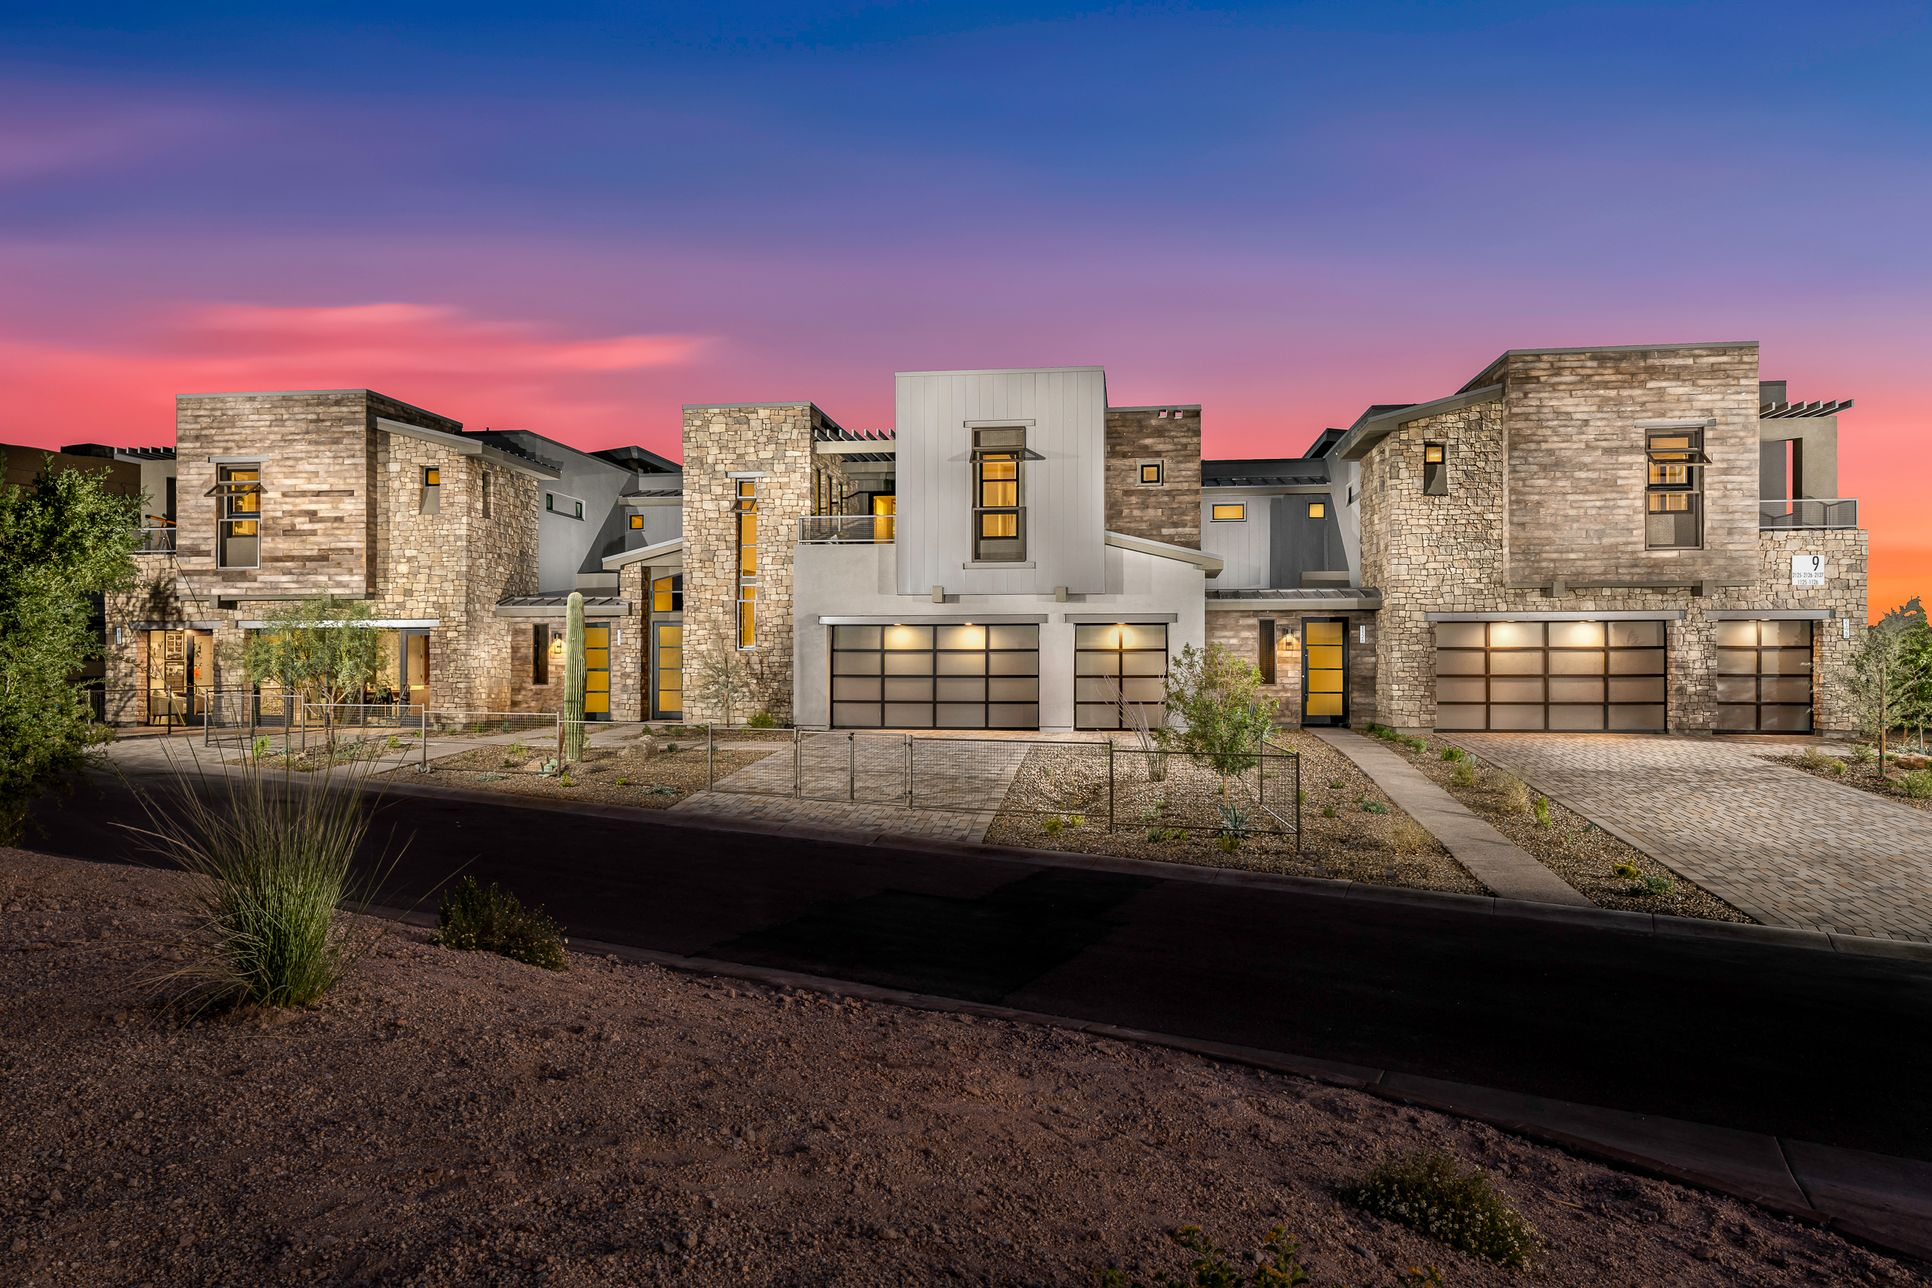 Our gorgeous fully-furnished model homes:www.theretreatatsevendesertmountain.com